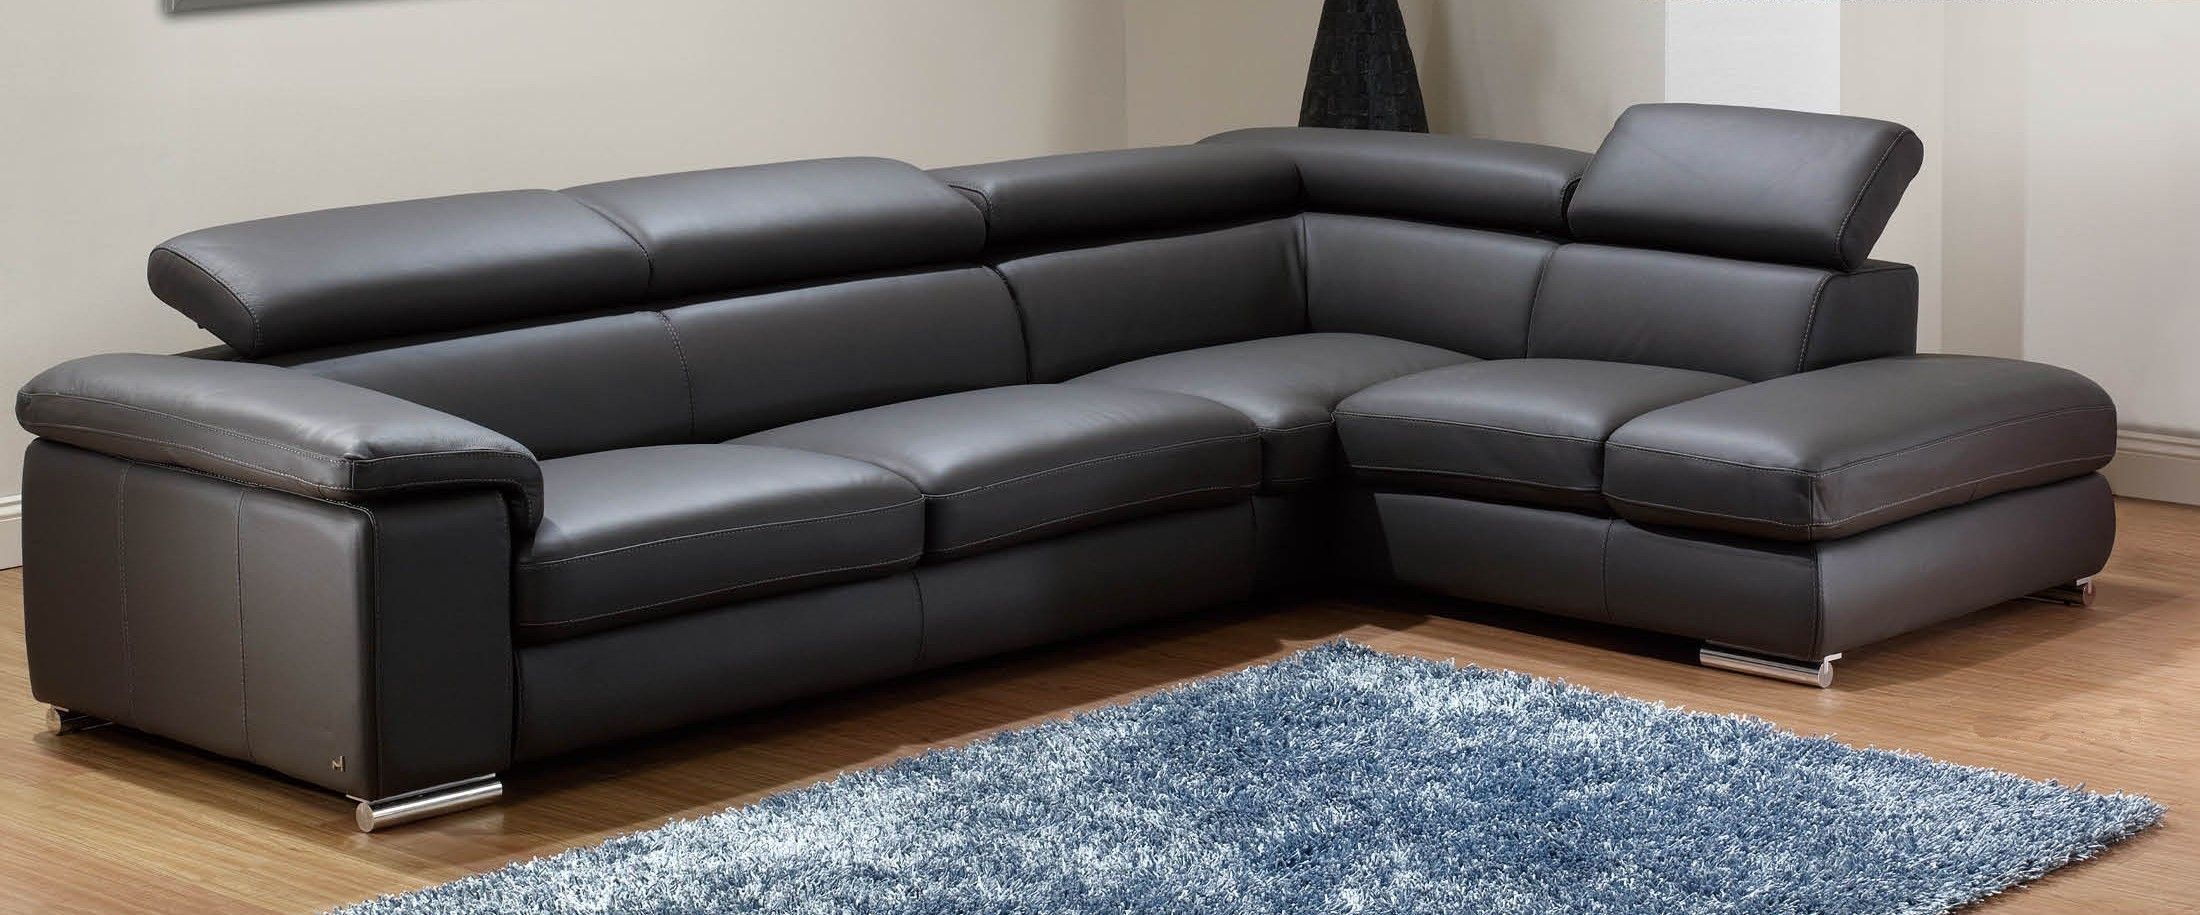 Leather Couch Ideas Awesome Modern Leather Sectional Sofa Epic Modern